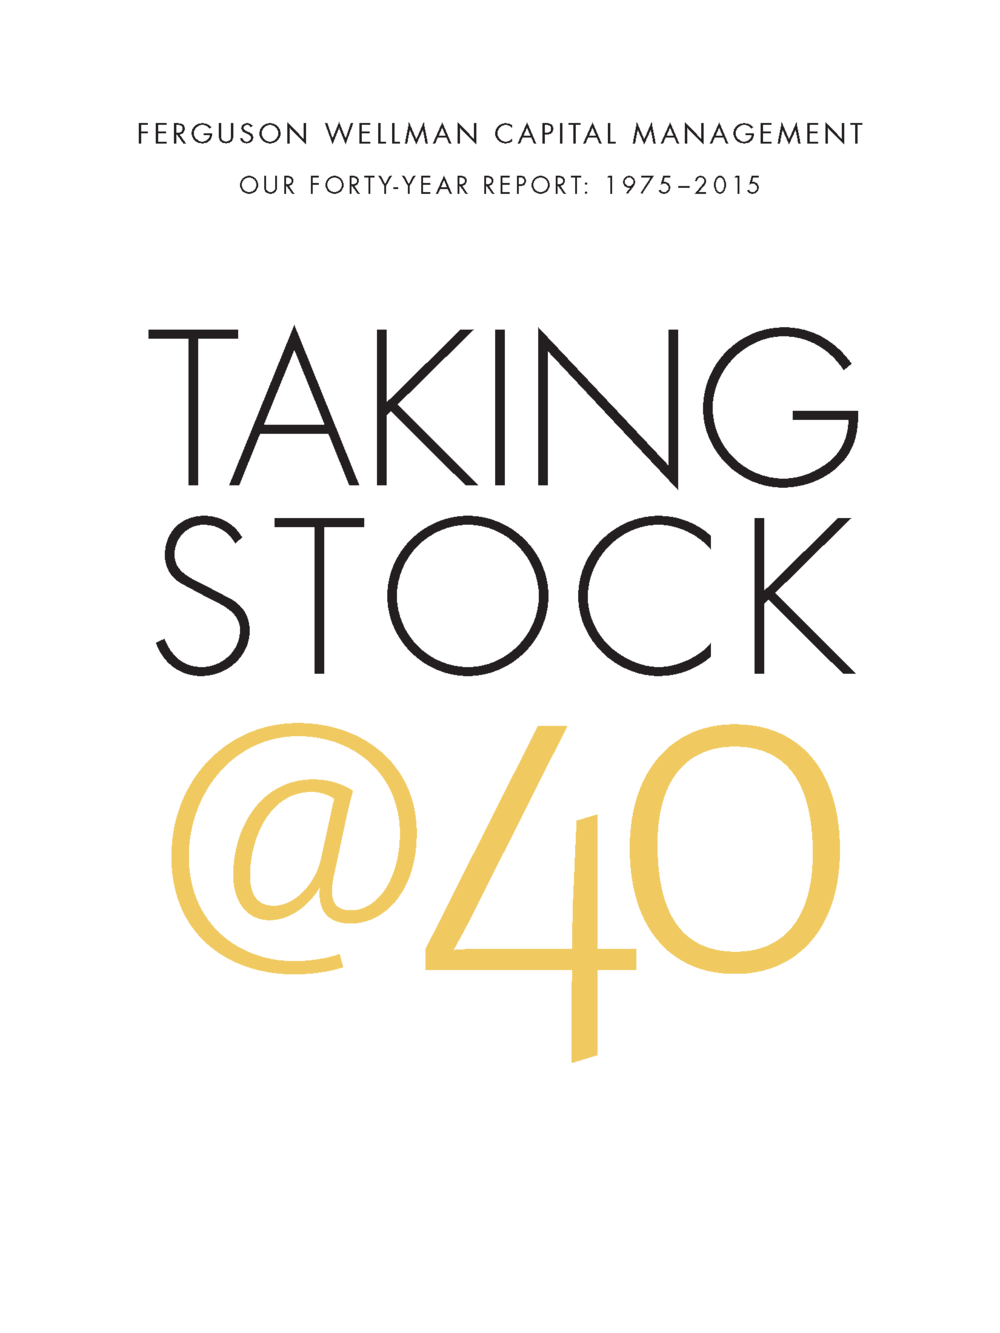 Front_Page_FW_WB_40yr_Report